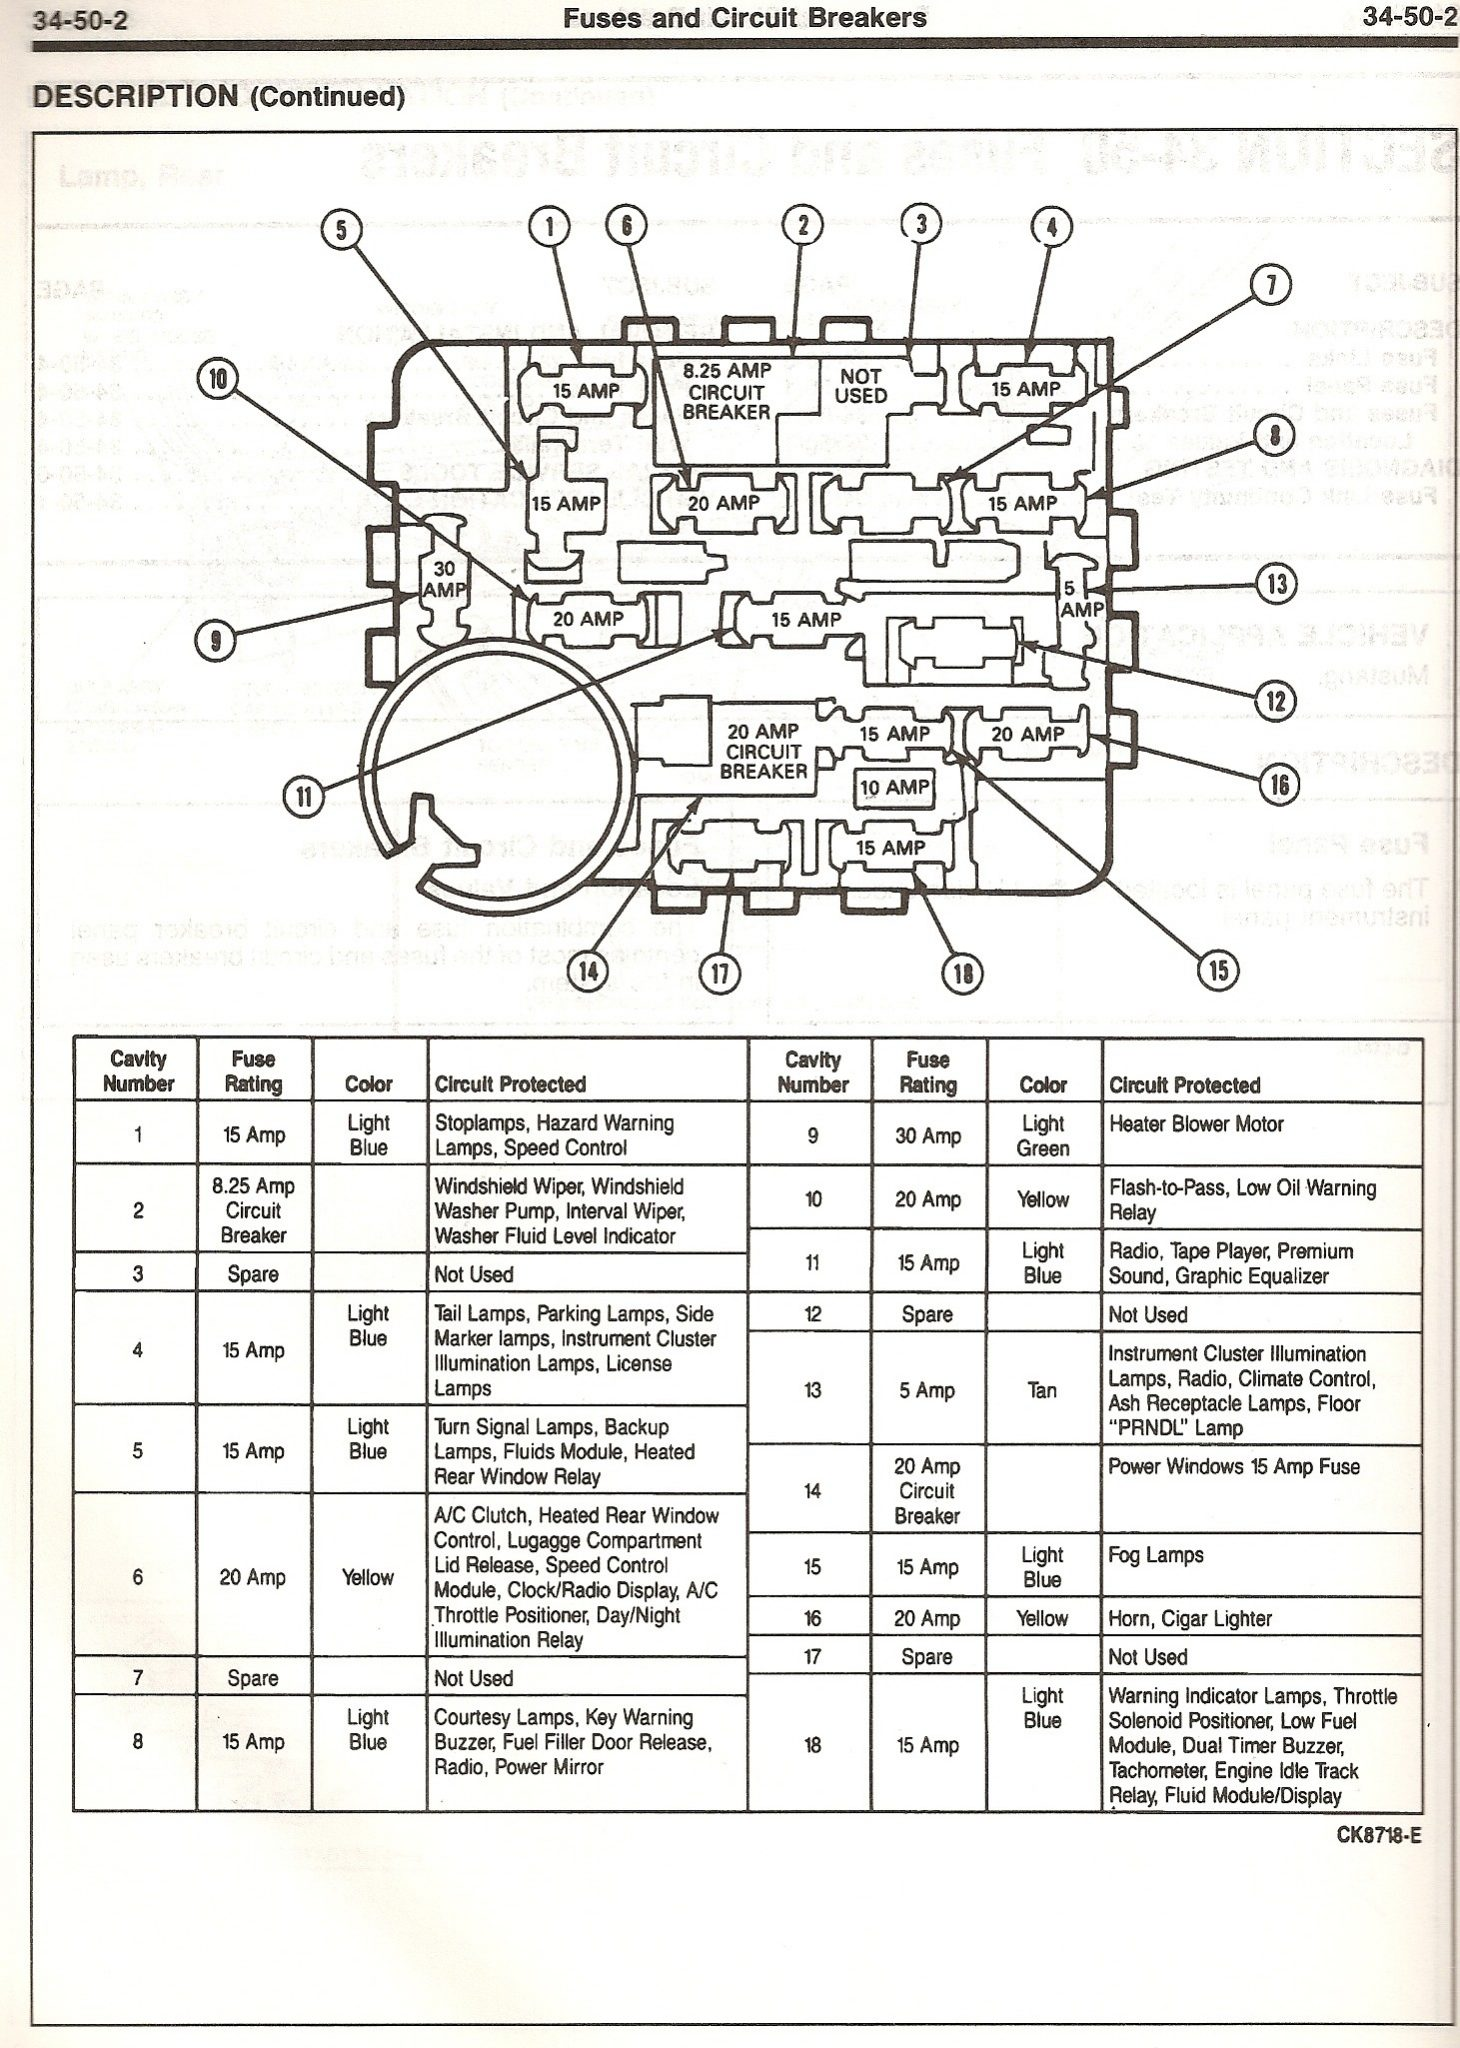 1991 Ford Explorer Fuse Box Diagram Wiring Diagrams Name Name Miglioribanche It